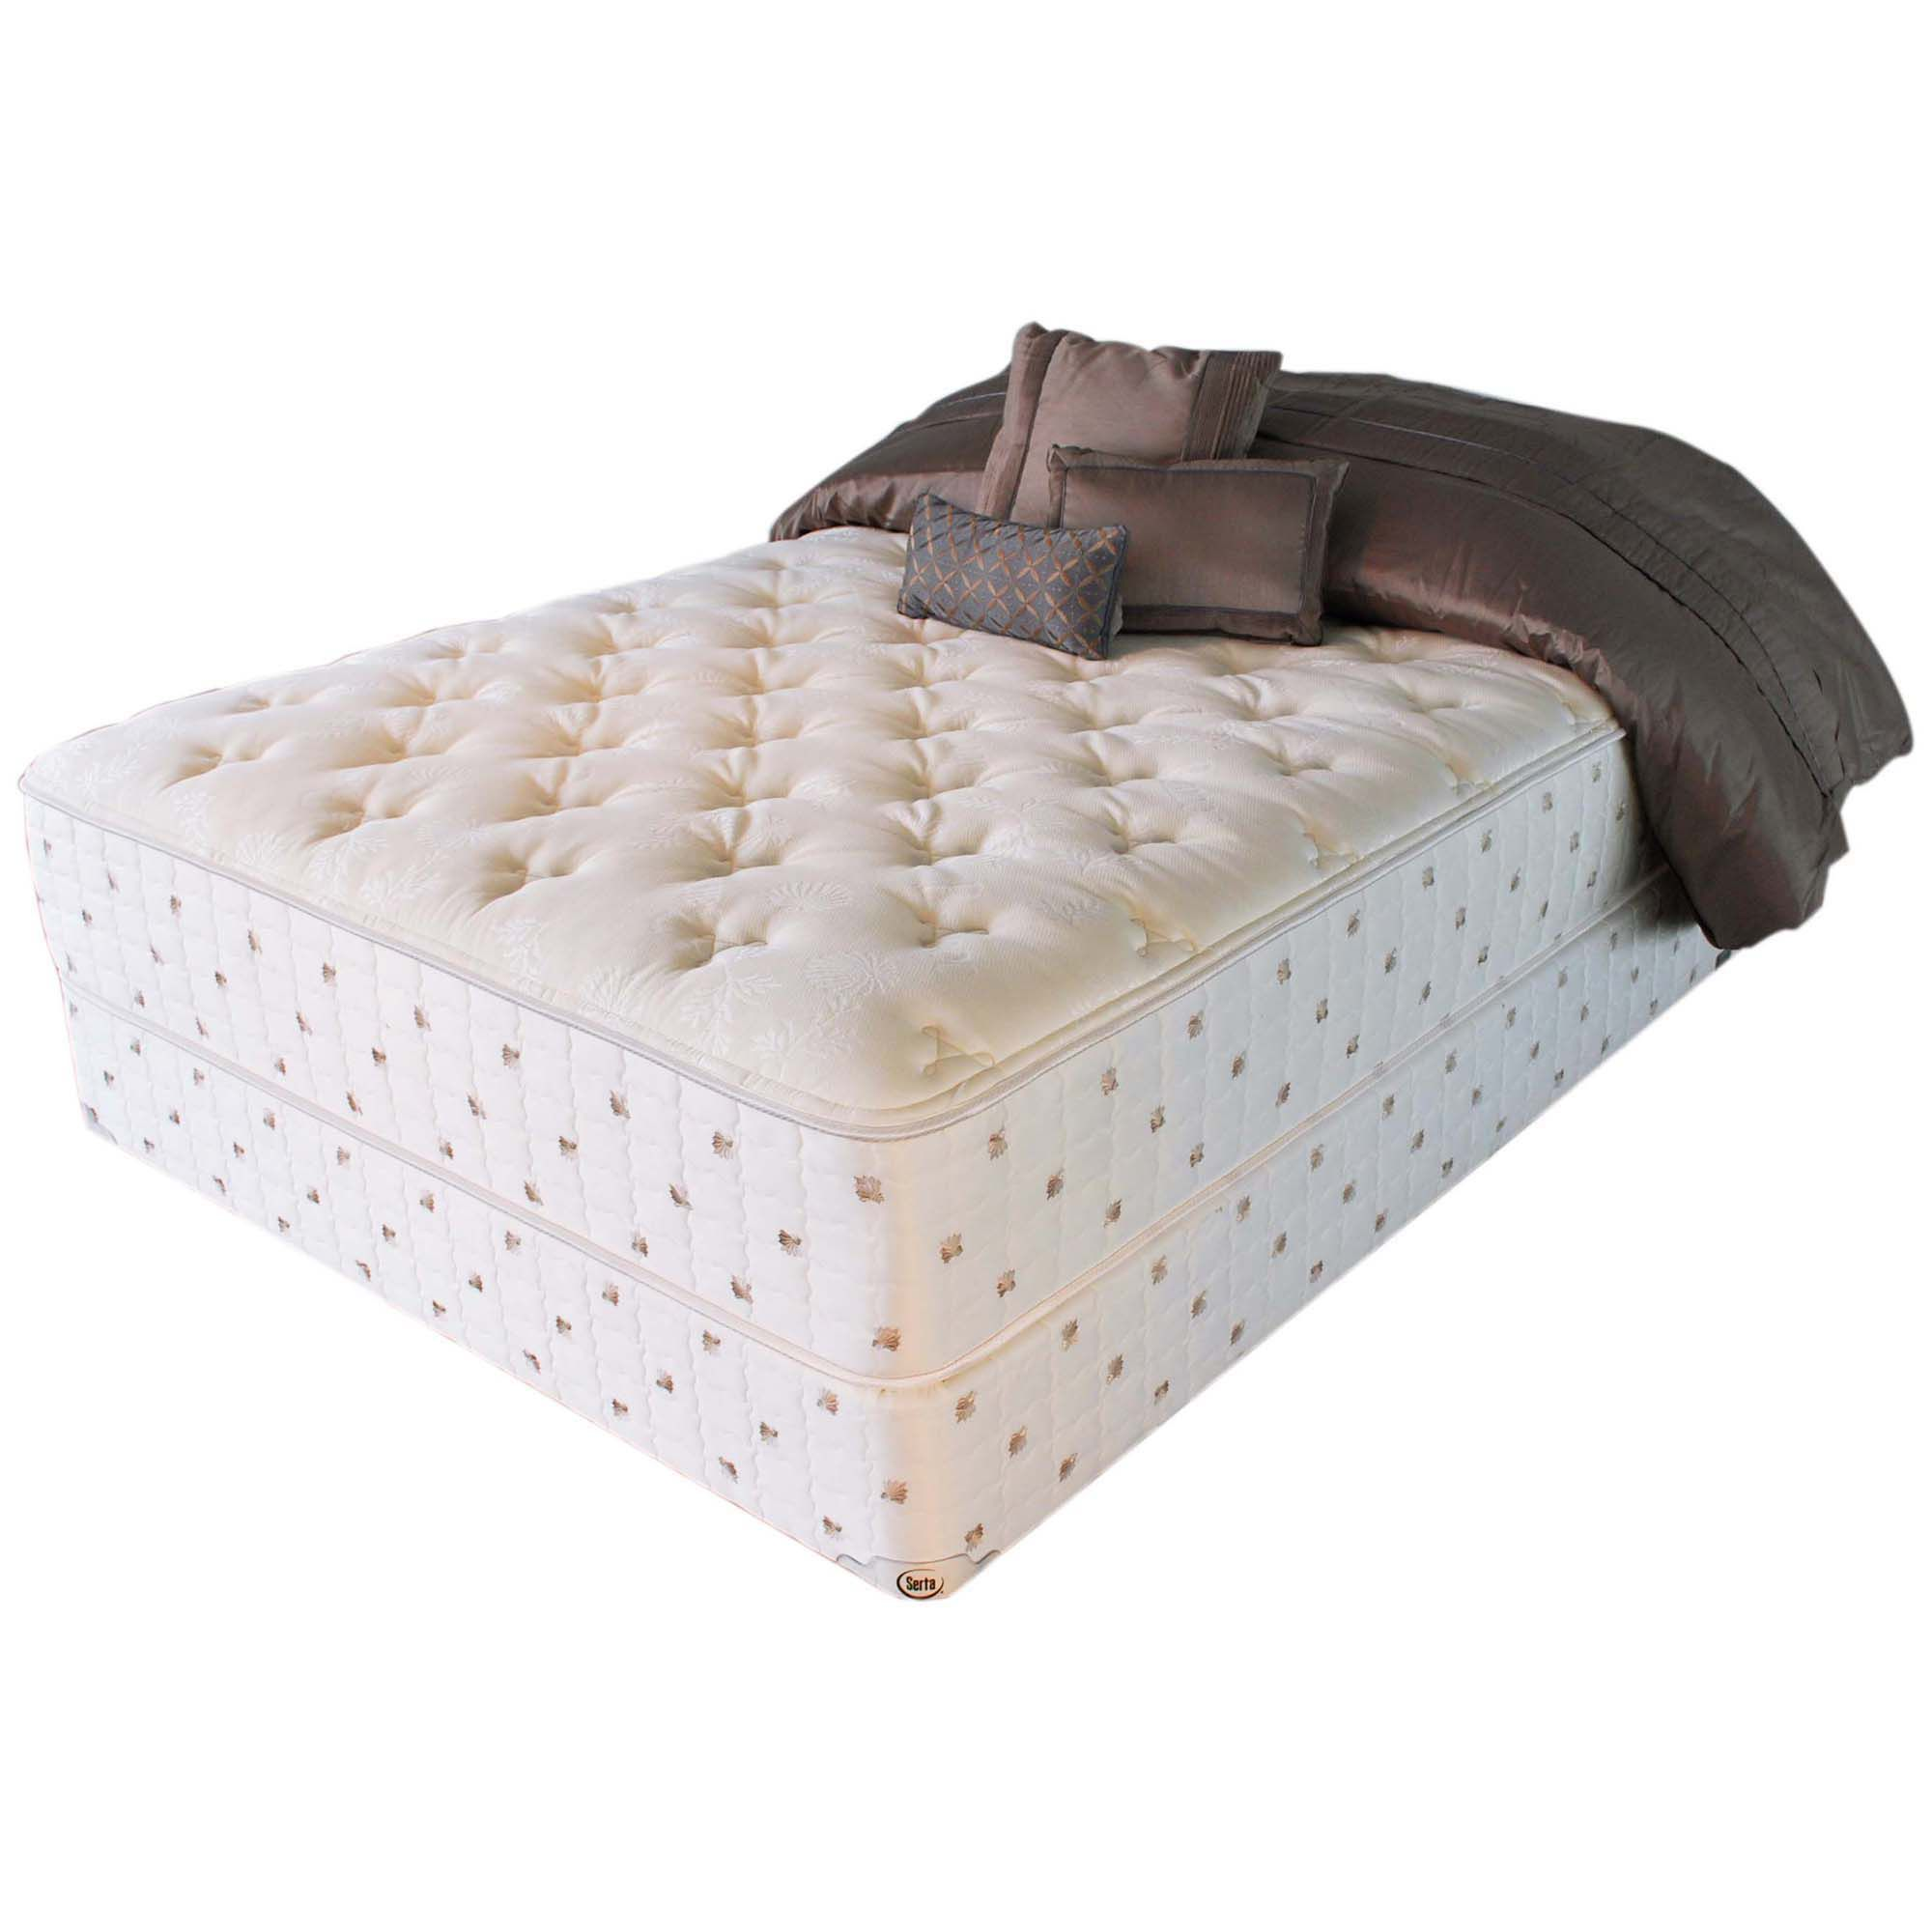 Reese-Limited-Plush-II-Queen-Mattress